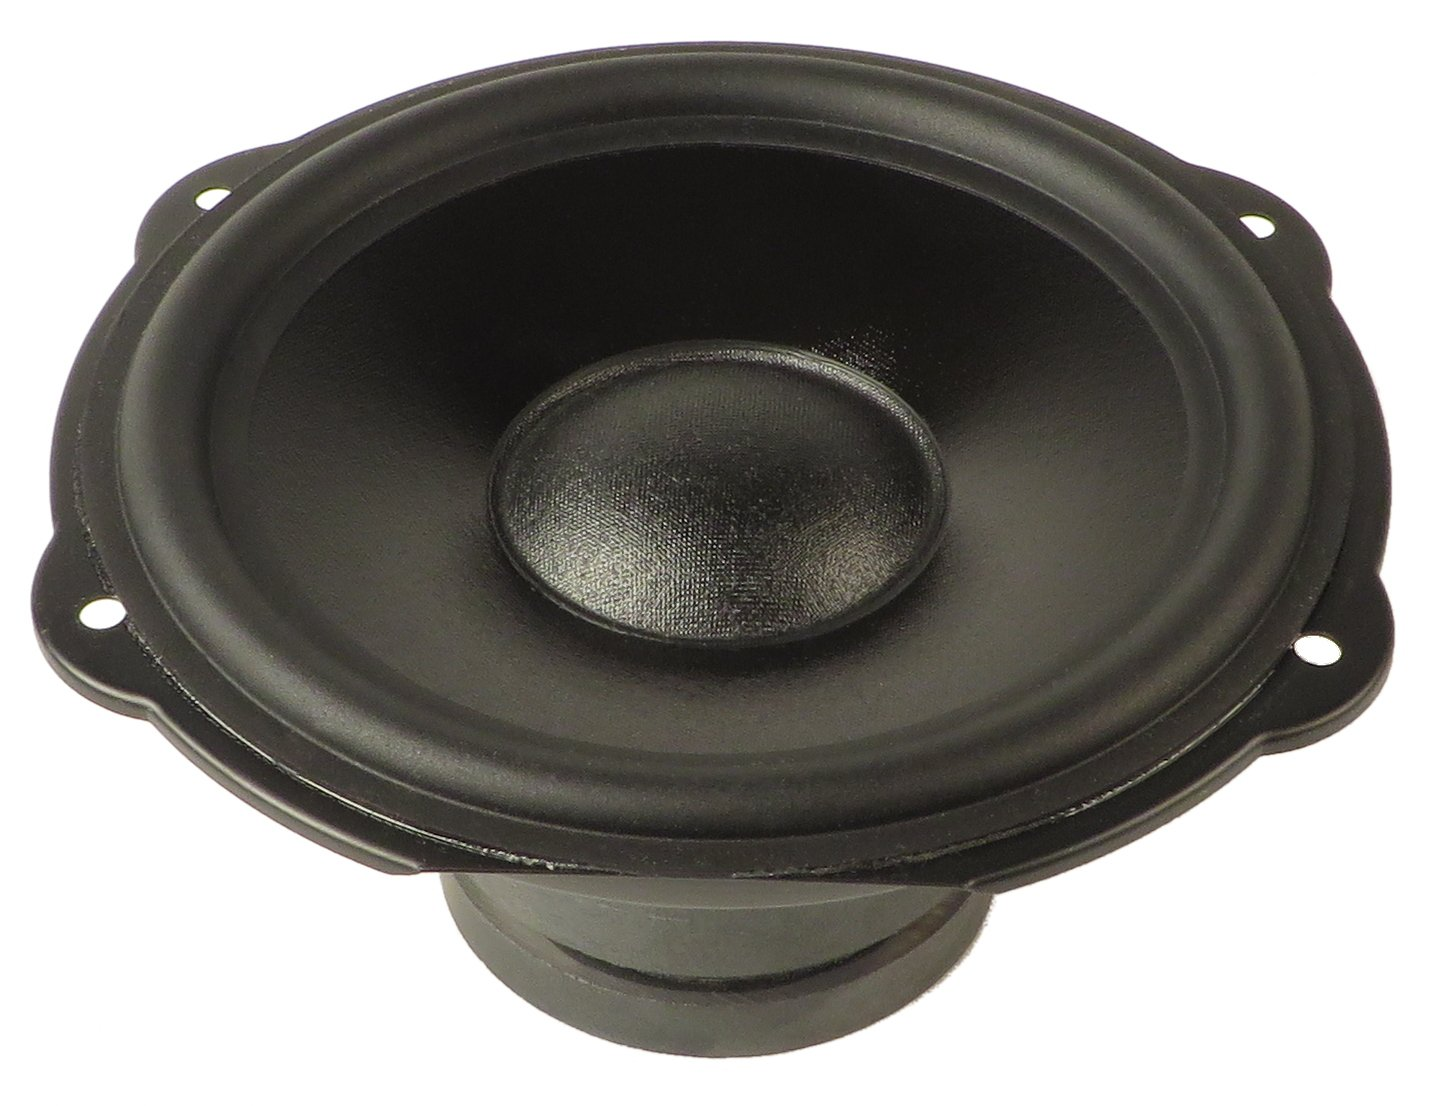 Woofer for EV EVID 6.2